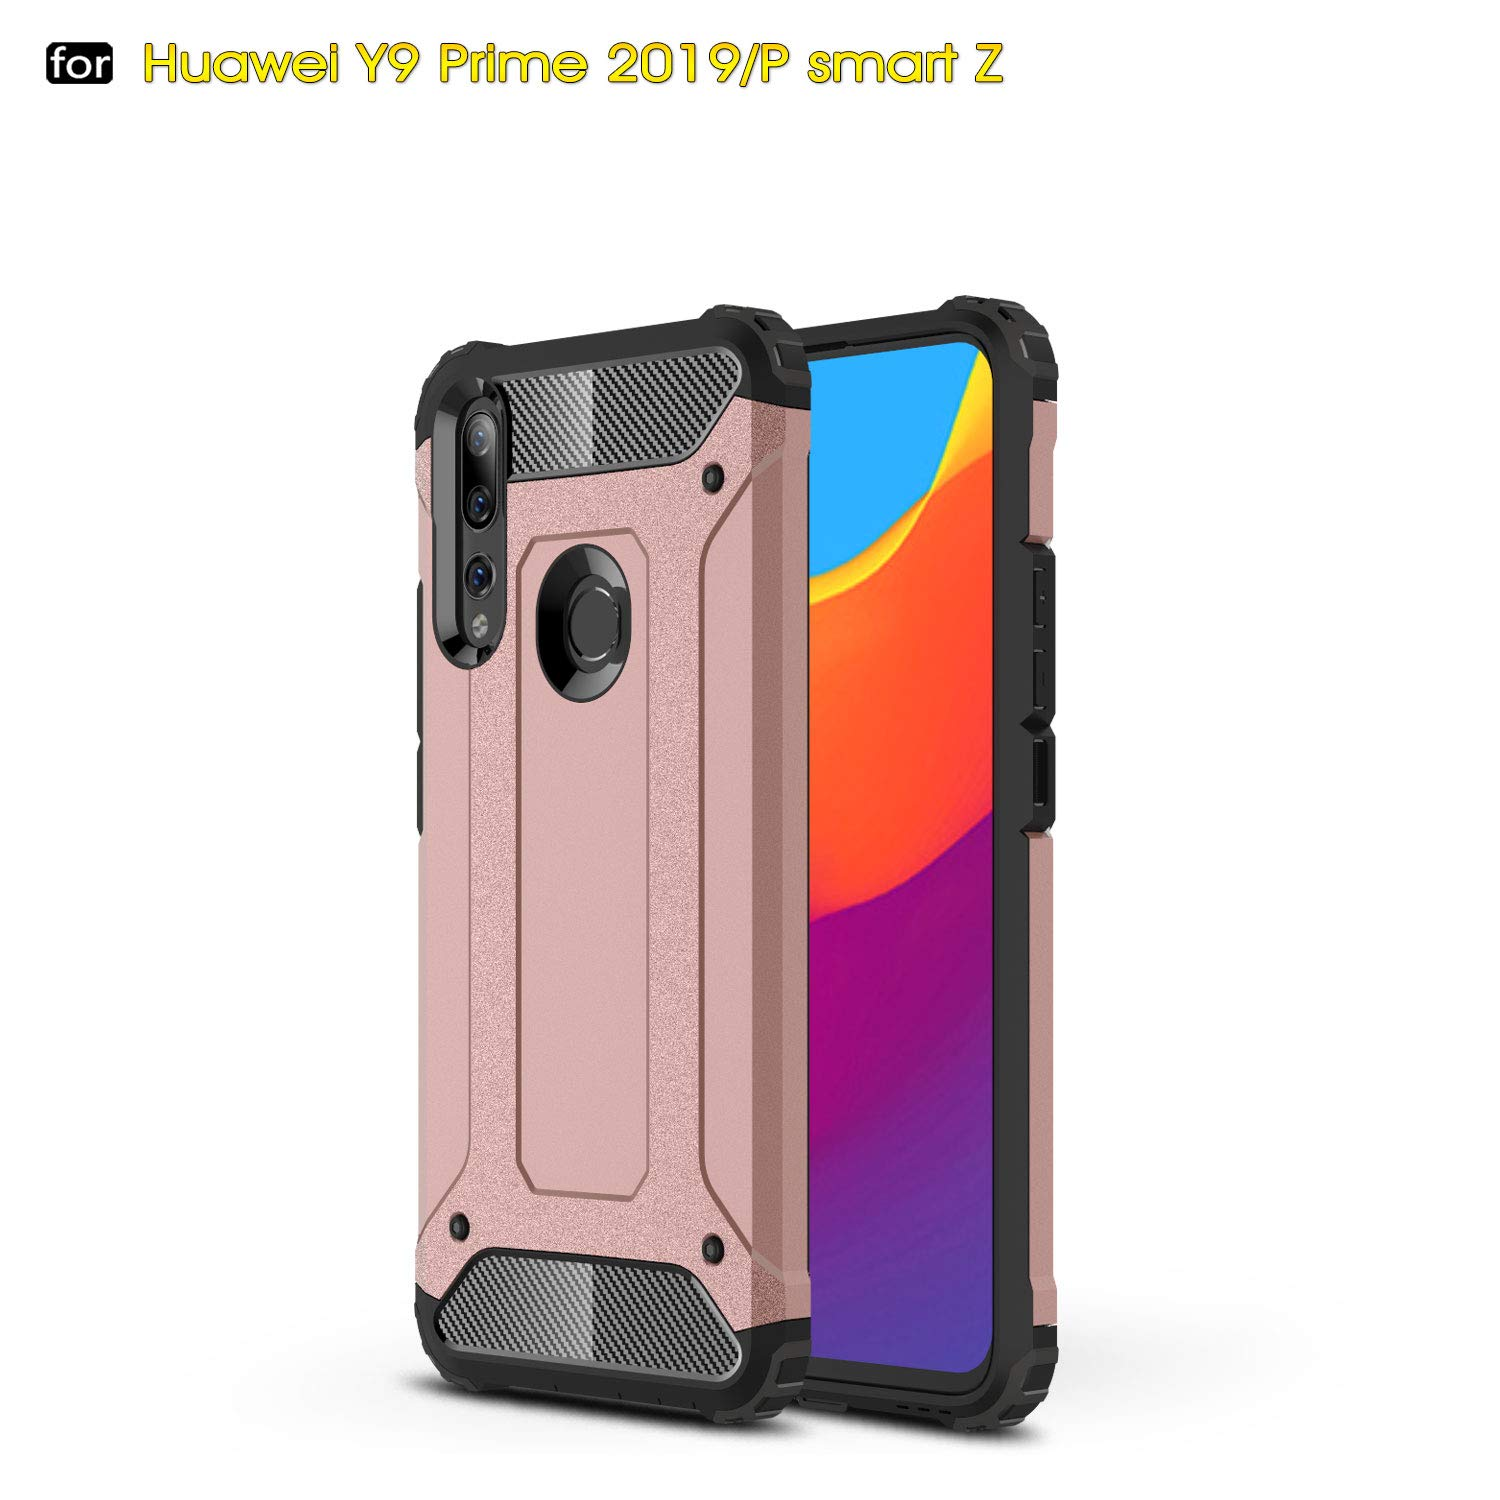 P Smart Z /Y9 Prime 2019 Case, TPU +PC Iron Armor Shockproof Designed Case,Full Body Dual Layer Rugged Cover for Huawei P Smart Z /Y9 Prime 2019 ...